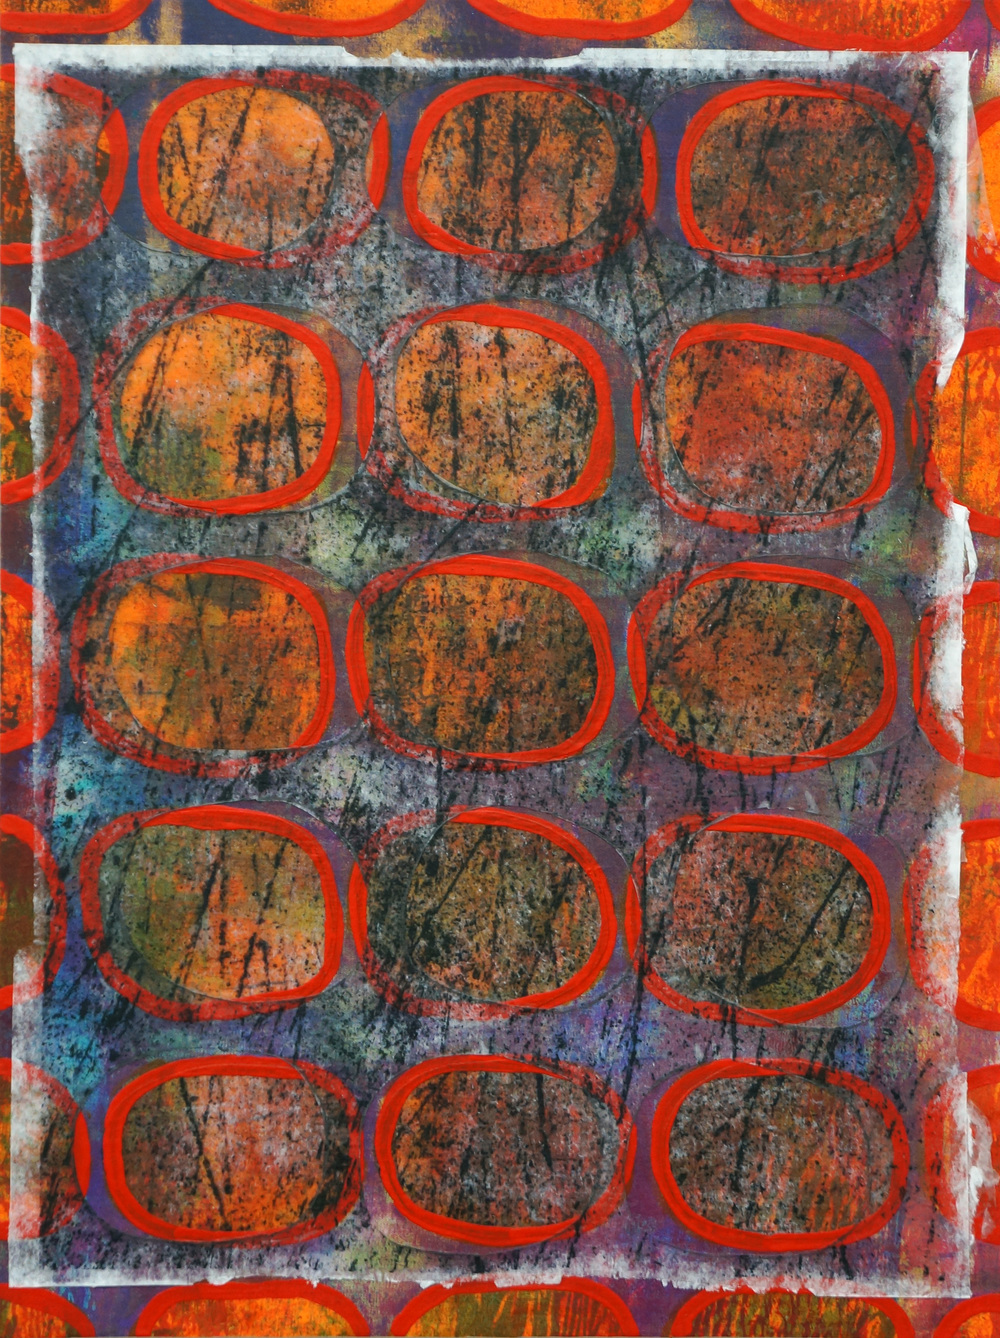 """Jeanne Williamson, Bubbles and Cracks on Ice on Fences #4 , mixed media on cradled board, 14x14,"""" $950"""